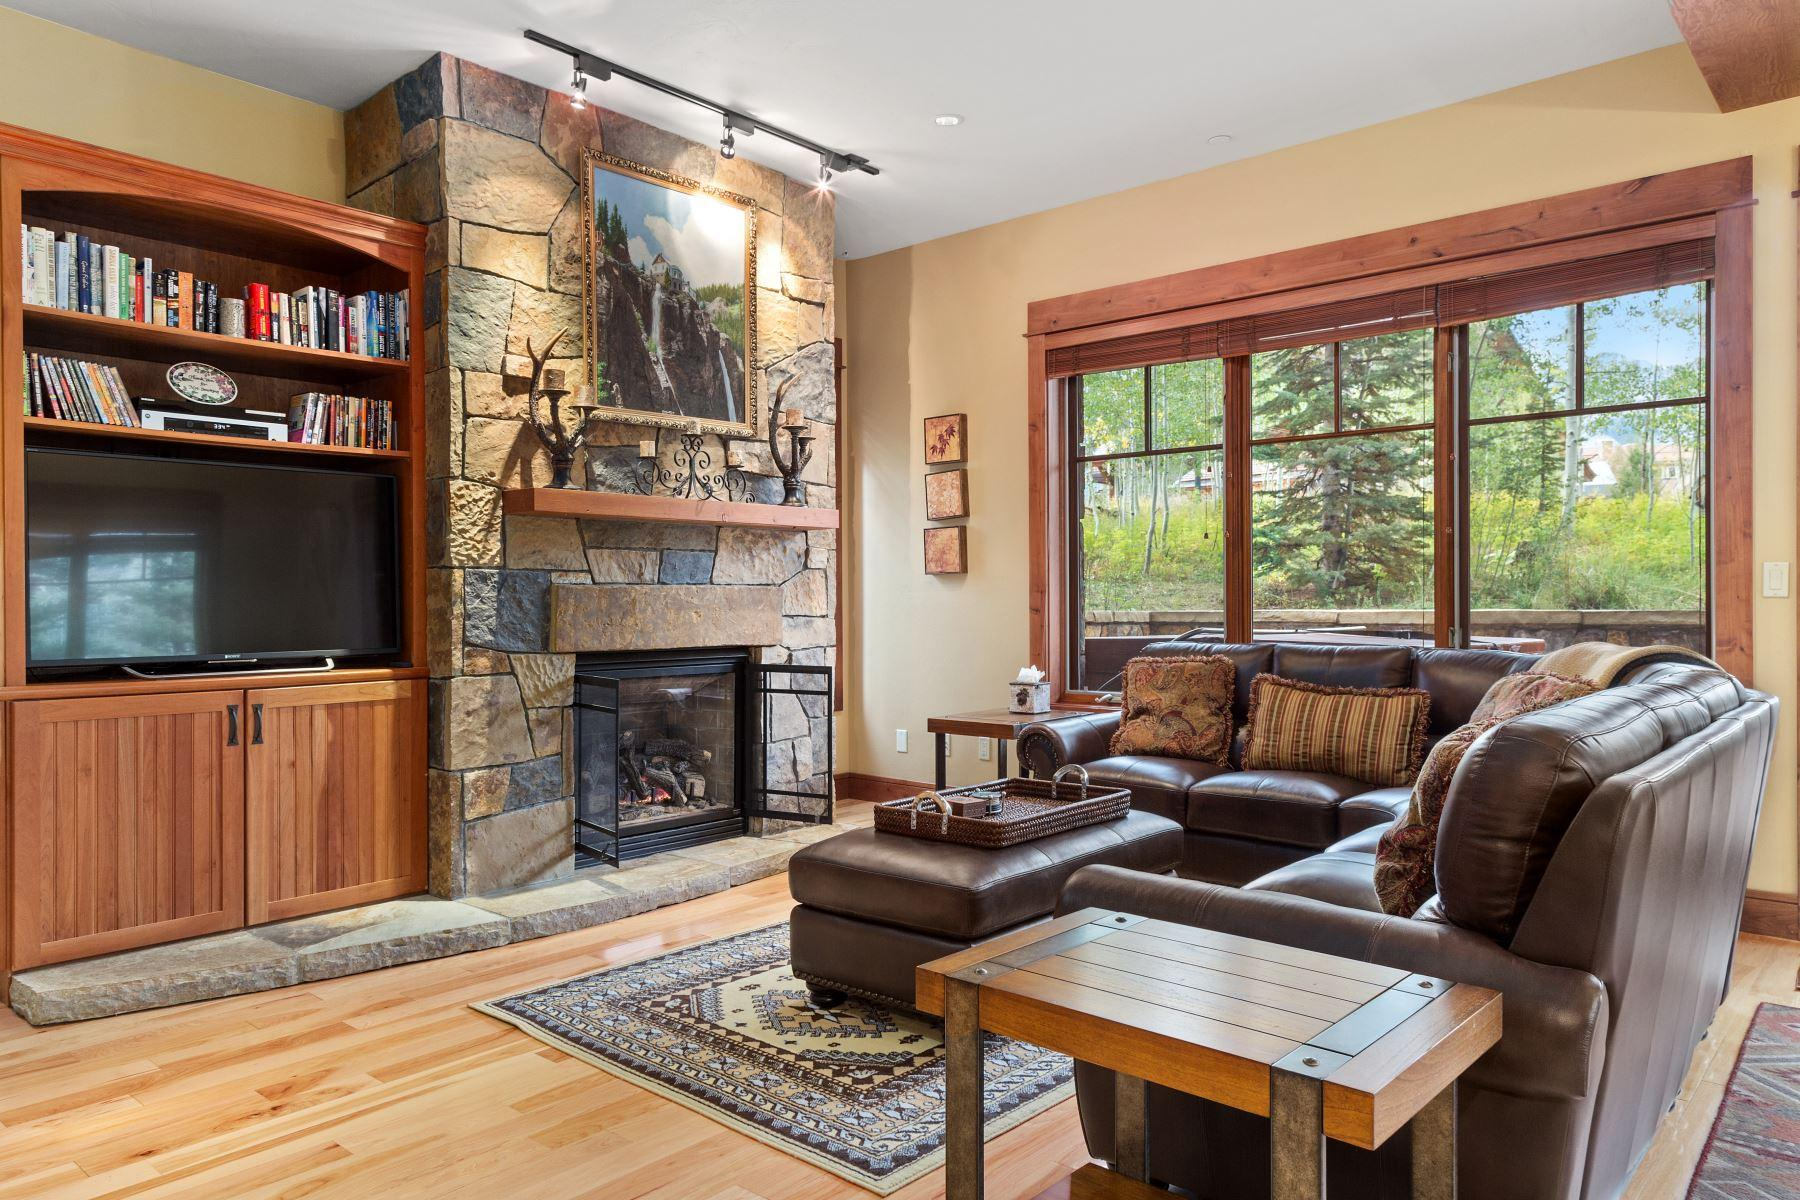 Property Image 2 - Luxurious Condo with Ski Access, Hot Tub, and Oxygen Bar